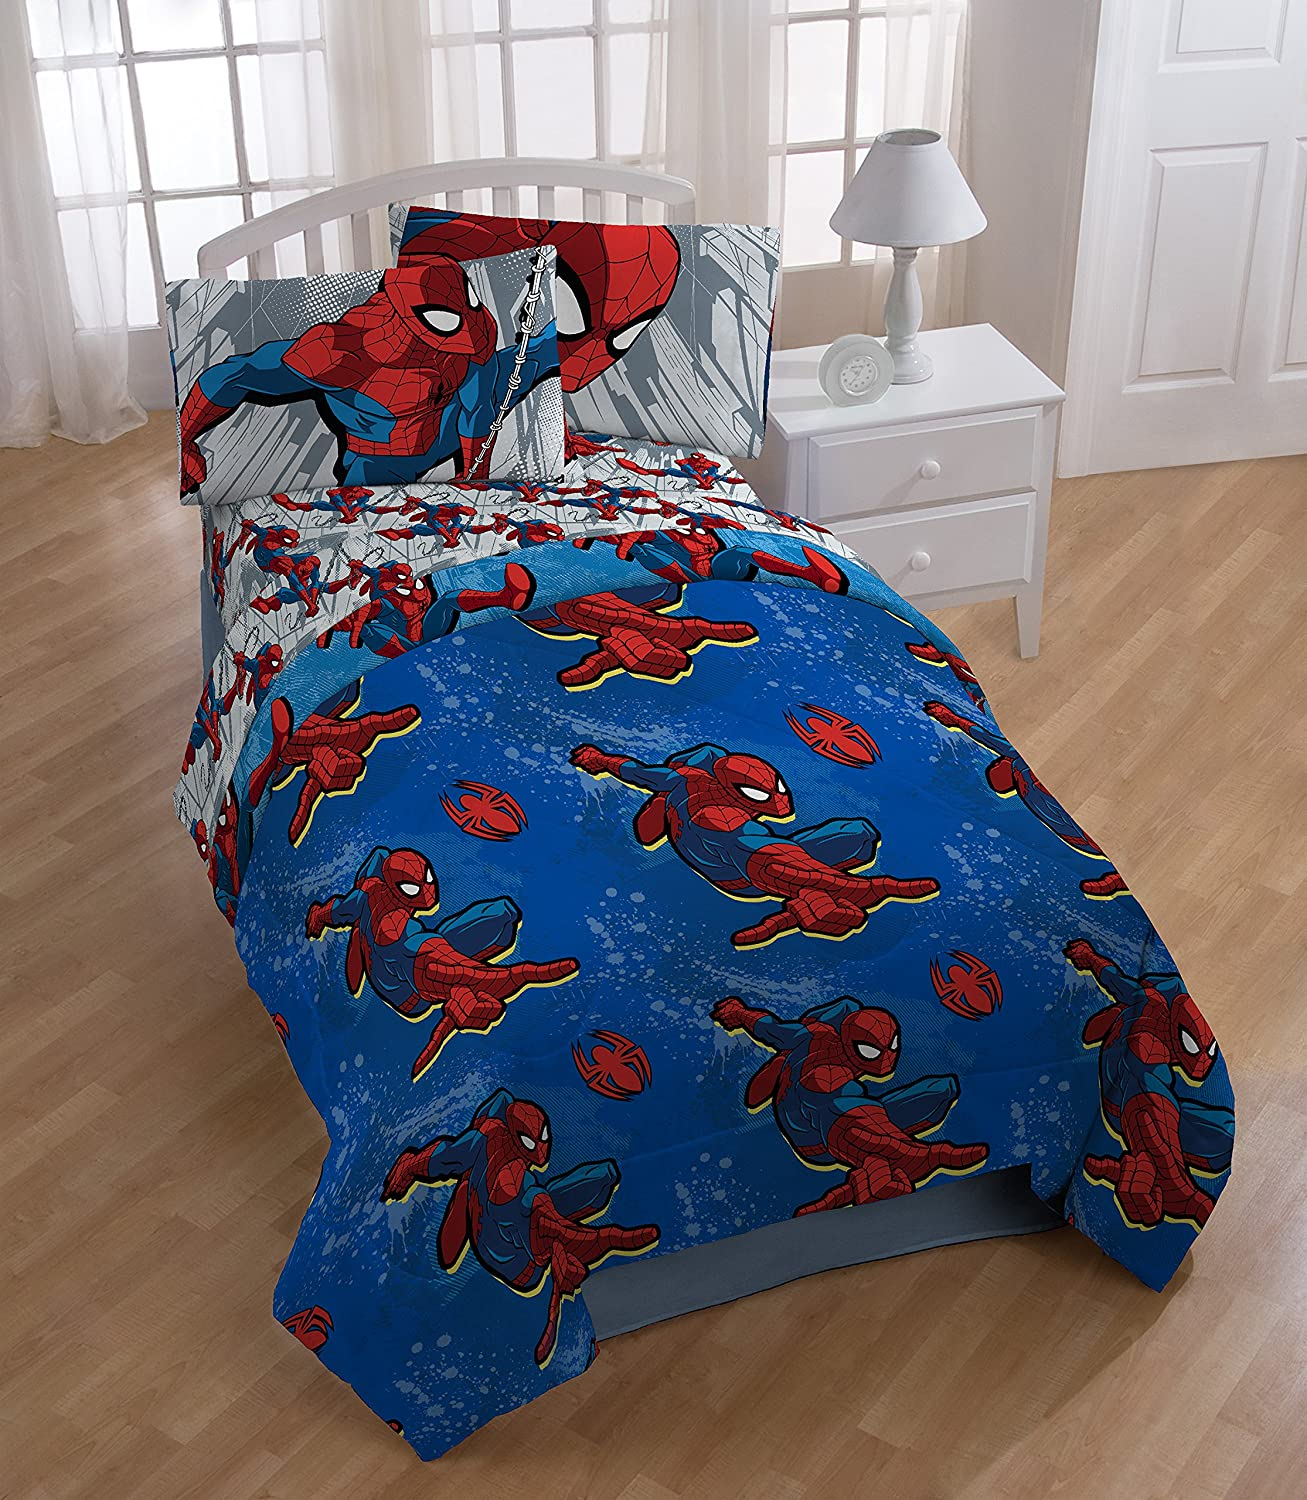 Marvel Spiderman City Graphic Twin Comforter